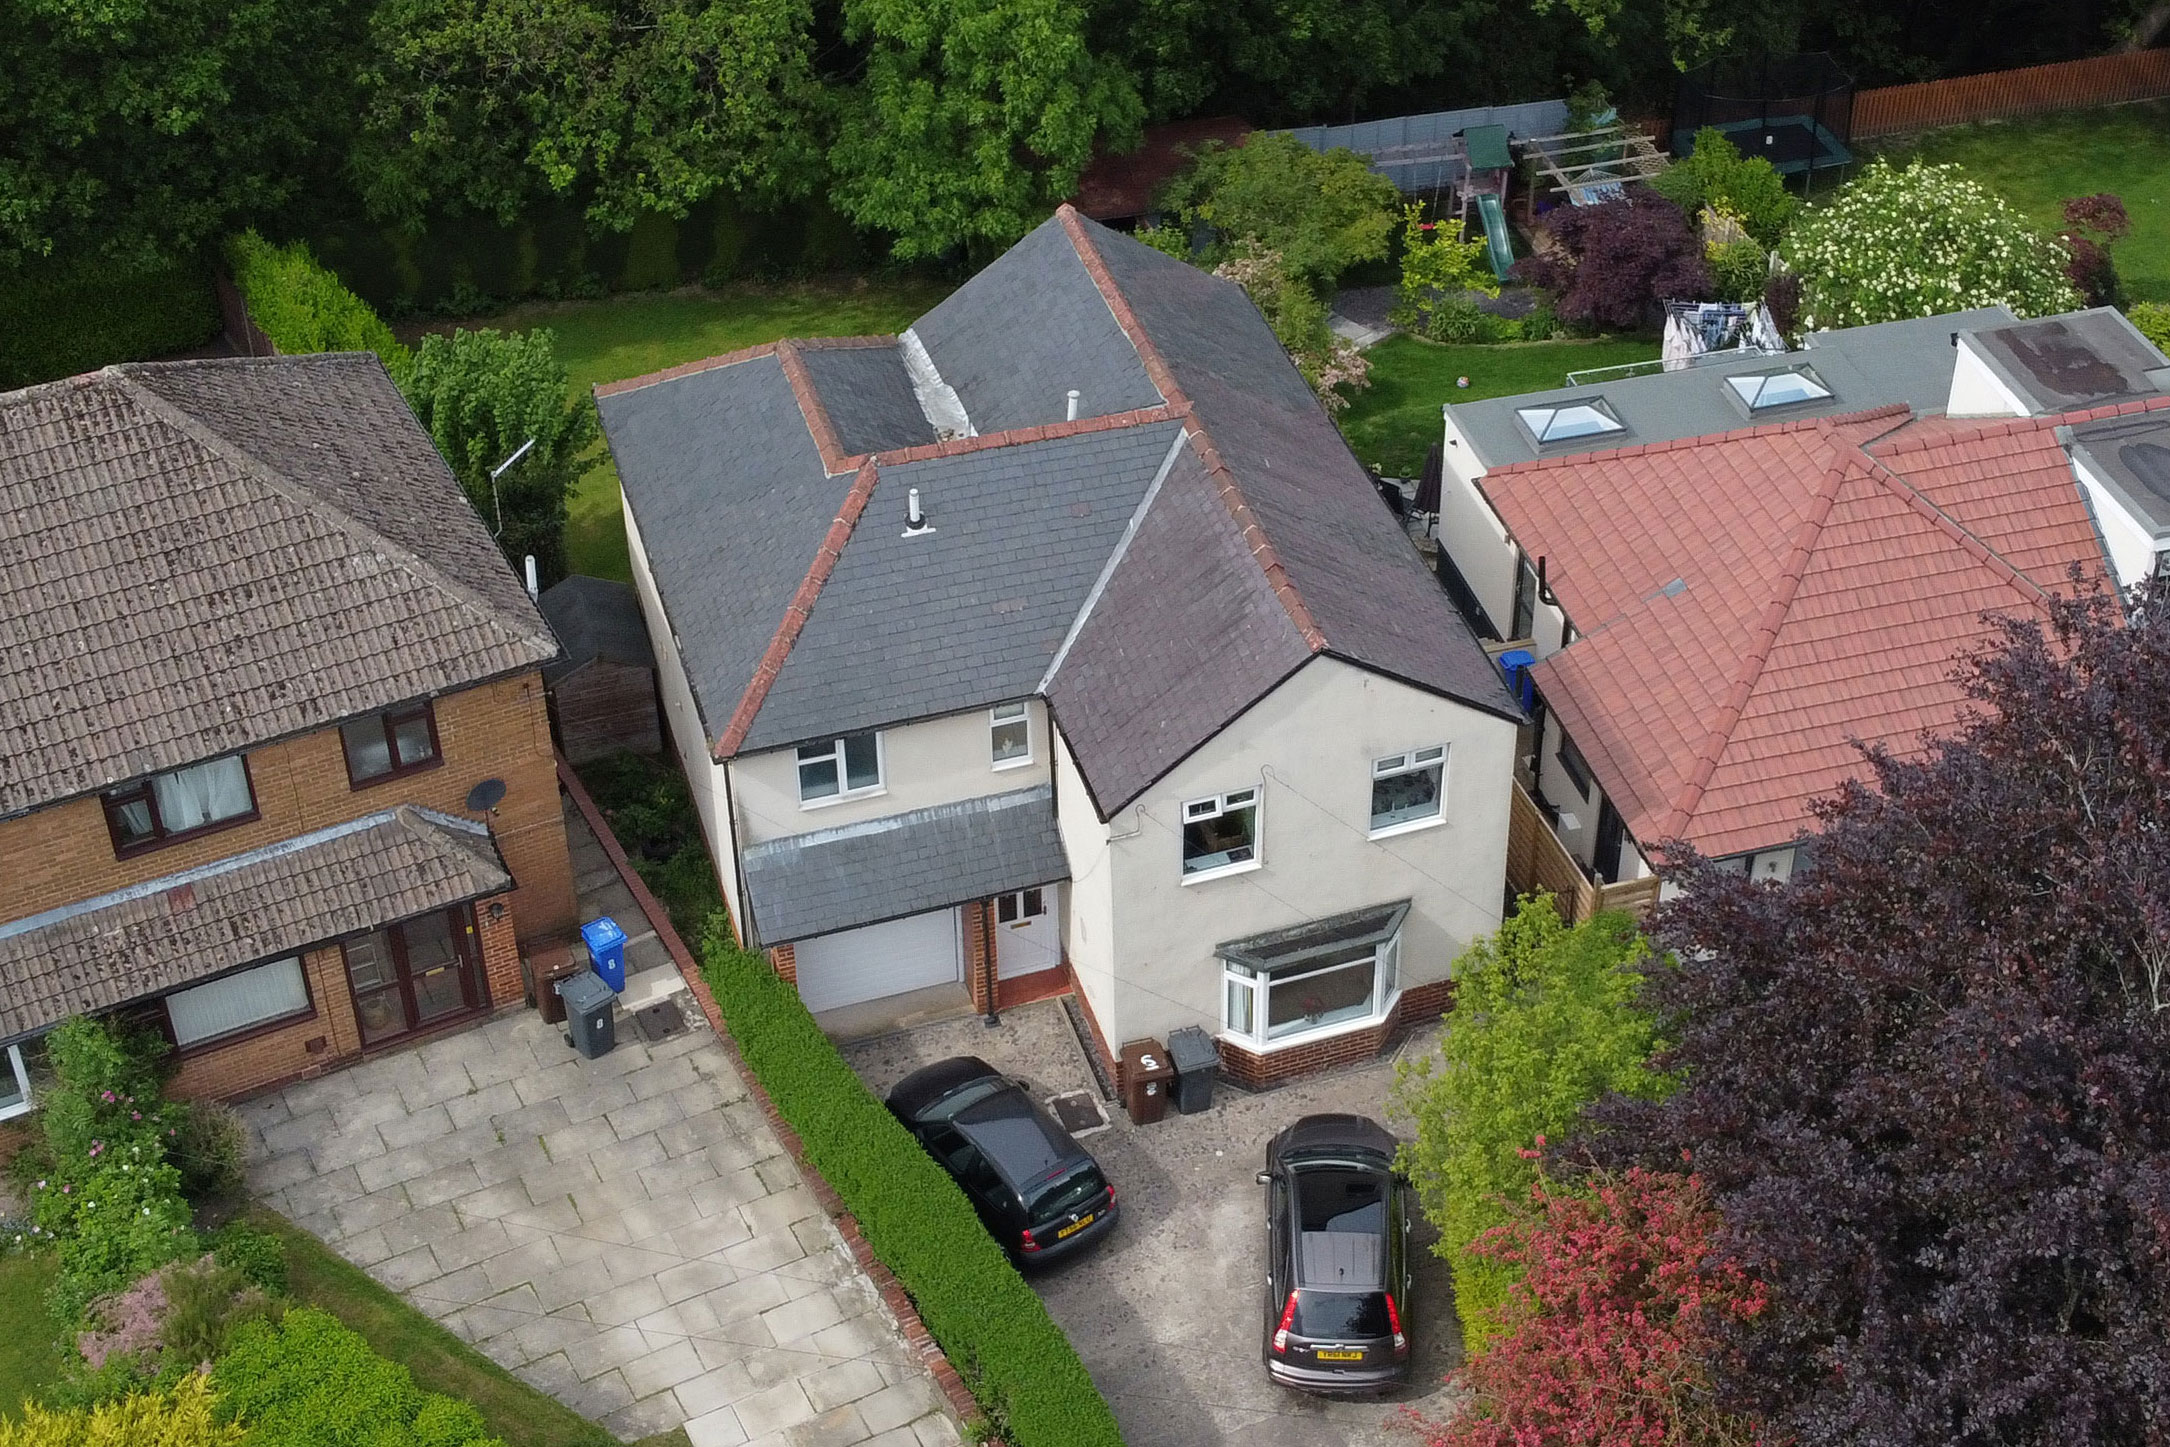 Drone Photogrpahy & Aerial Photography Sheffield & Bakewell